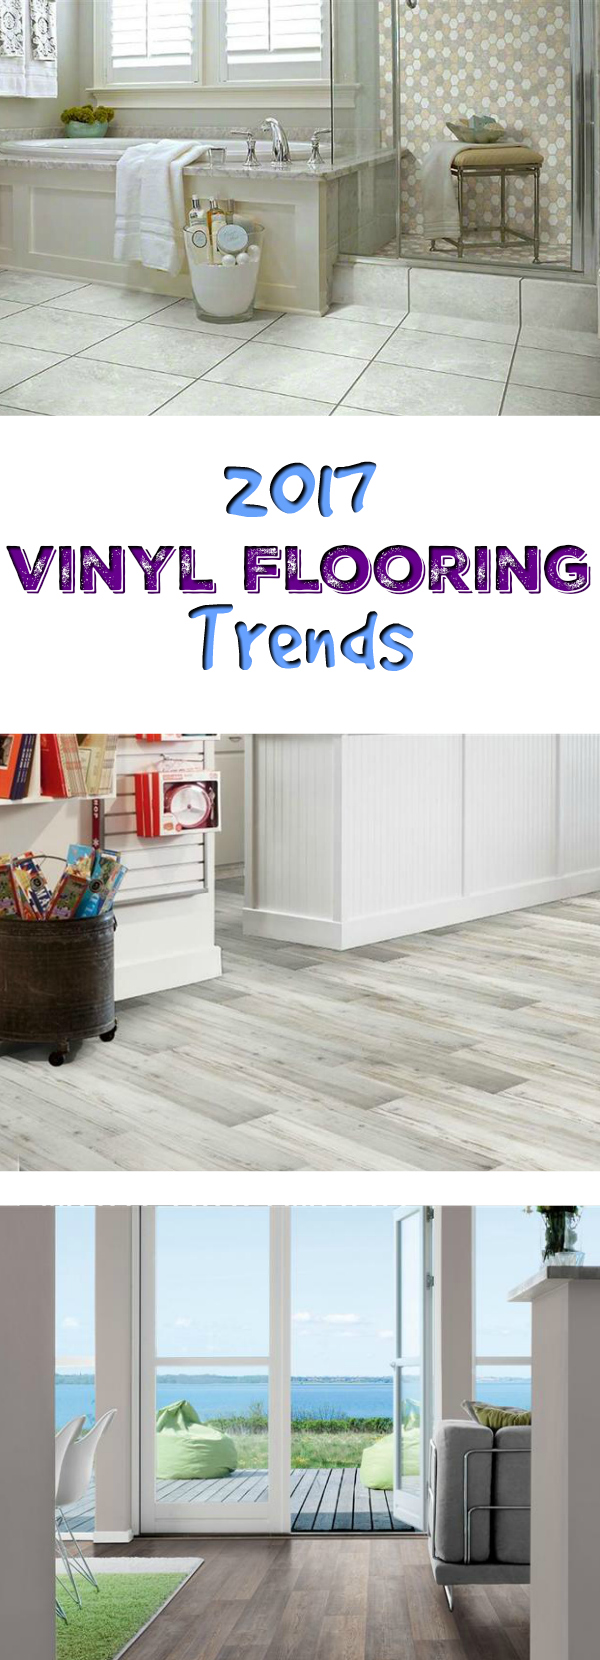 2017 Vinyl Flooring Trends: 16 Hot New Ideas - FlooringInc Blog on world market bathroom, world market tables, world market kitchen islands, world market gifts, world market valentine's day, world market baby, world market kitchen decor, world market living rooms, world market dining room, world market lighting, world market kitchen utensils, world market art, world market curtains, world market chairs, world market furniture, world market bedroom, world market cabinets,